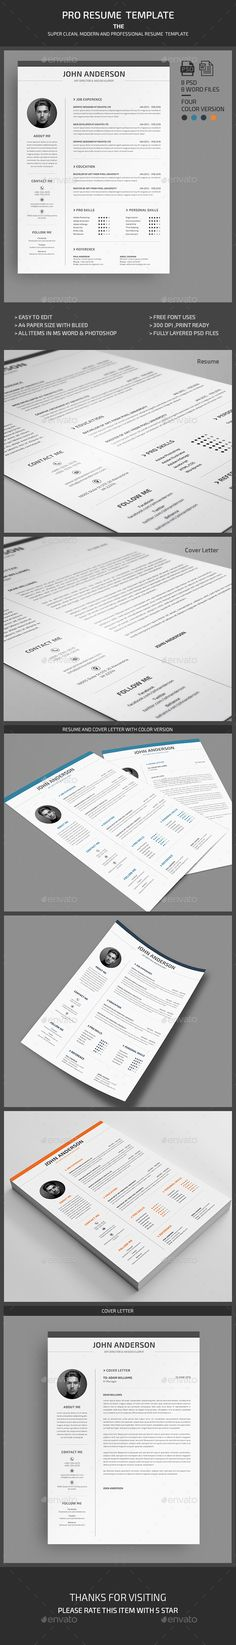 Resume TemplateCv  Cover Letter By Kingdom Of Design On